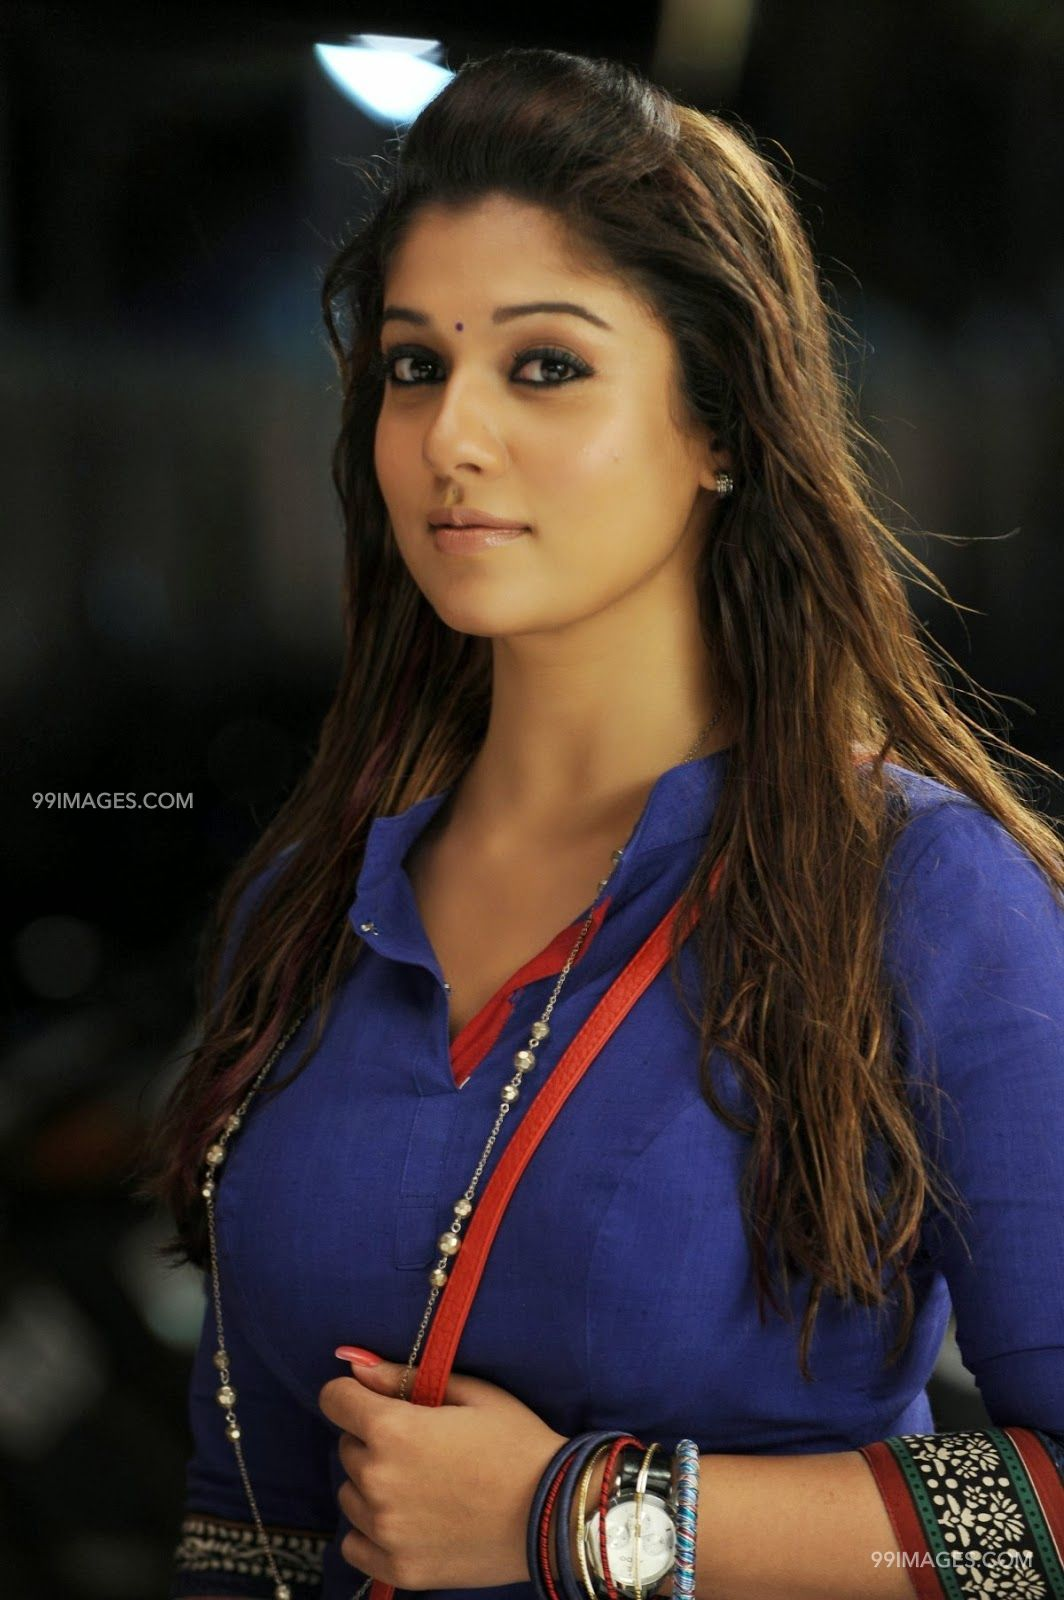 Nayanthara Hot HD Photos, Wallpapers, WhatsApp DP (1080p) (863) - Nayanthara